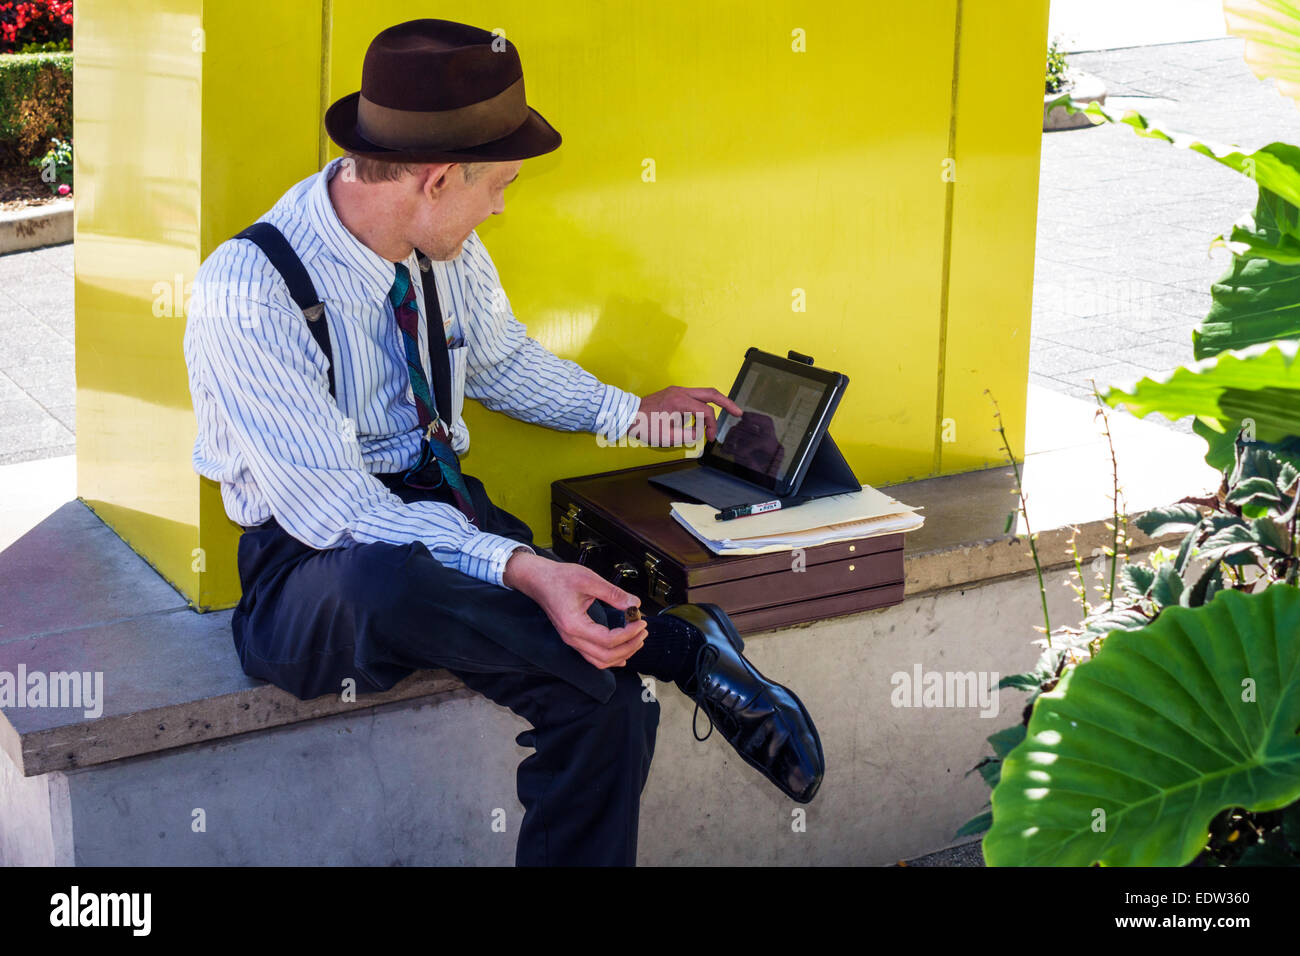 Chicago Illinois North River Clark Street man gangster mobster outfit guide using tablet iPad - Stock Image